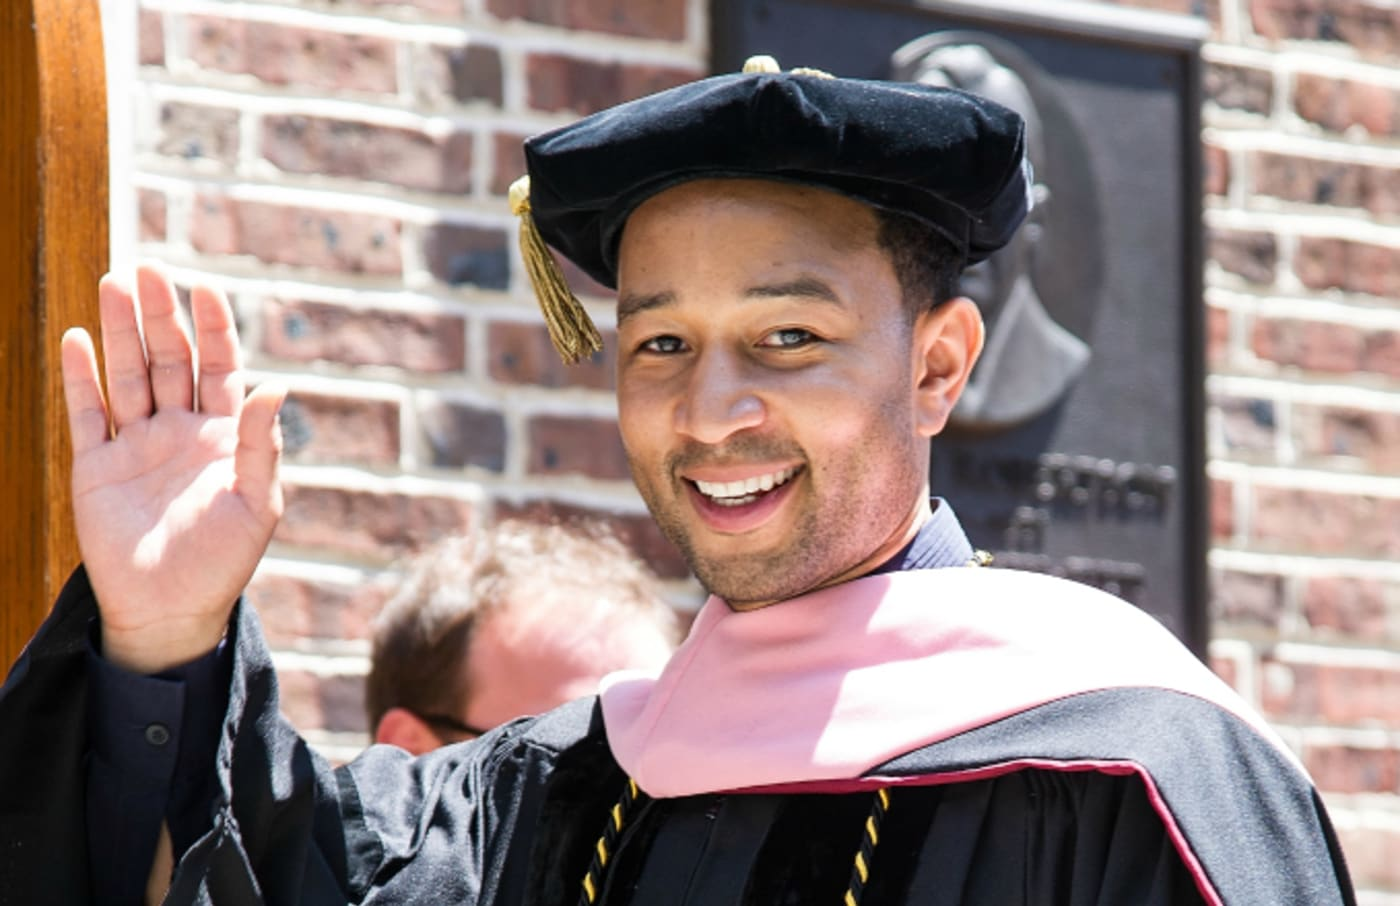 Singer songwriter John Legend receives an honorary doctorate of music